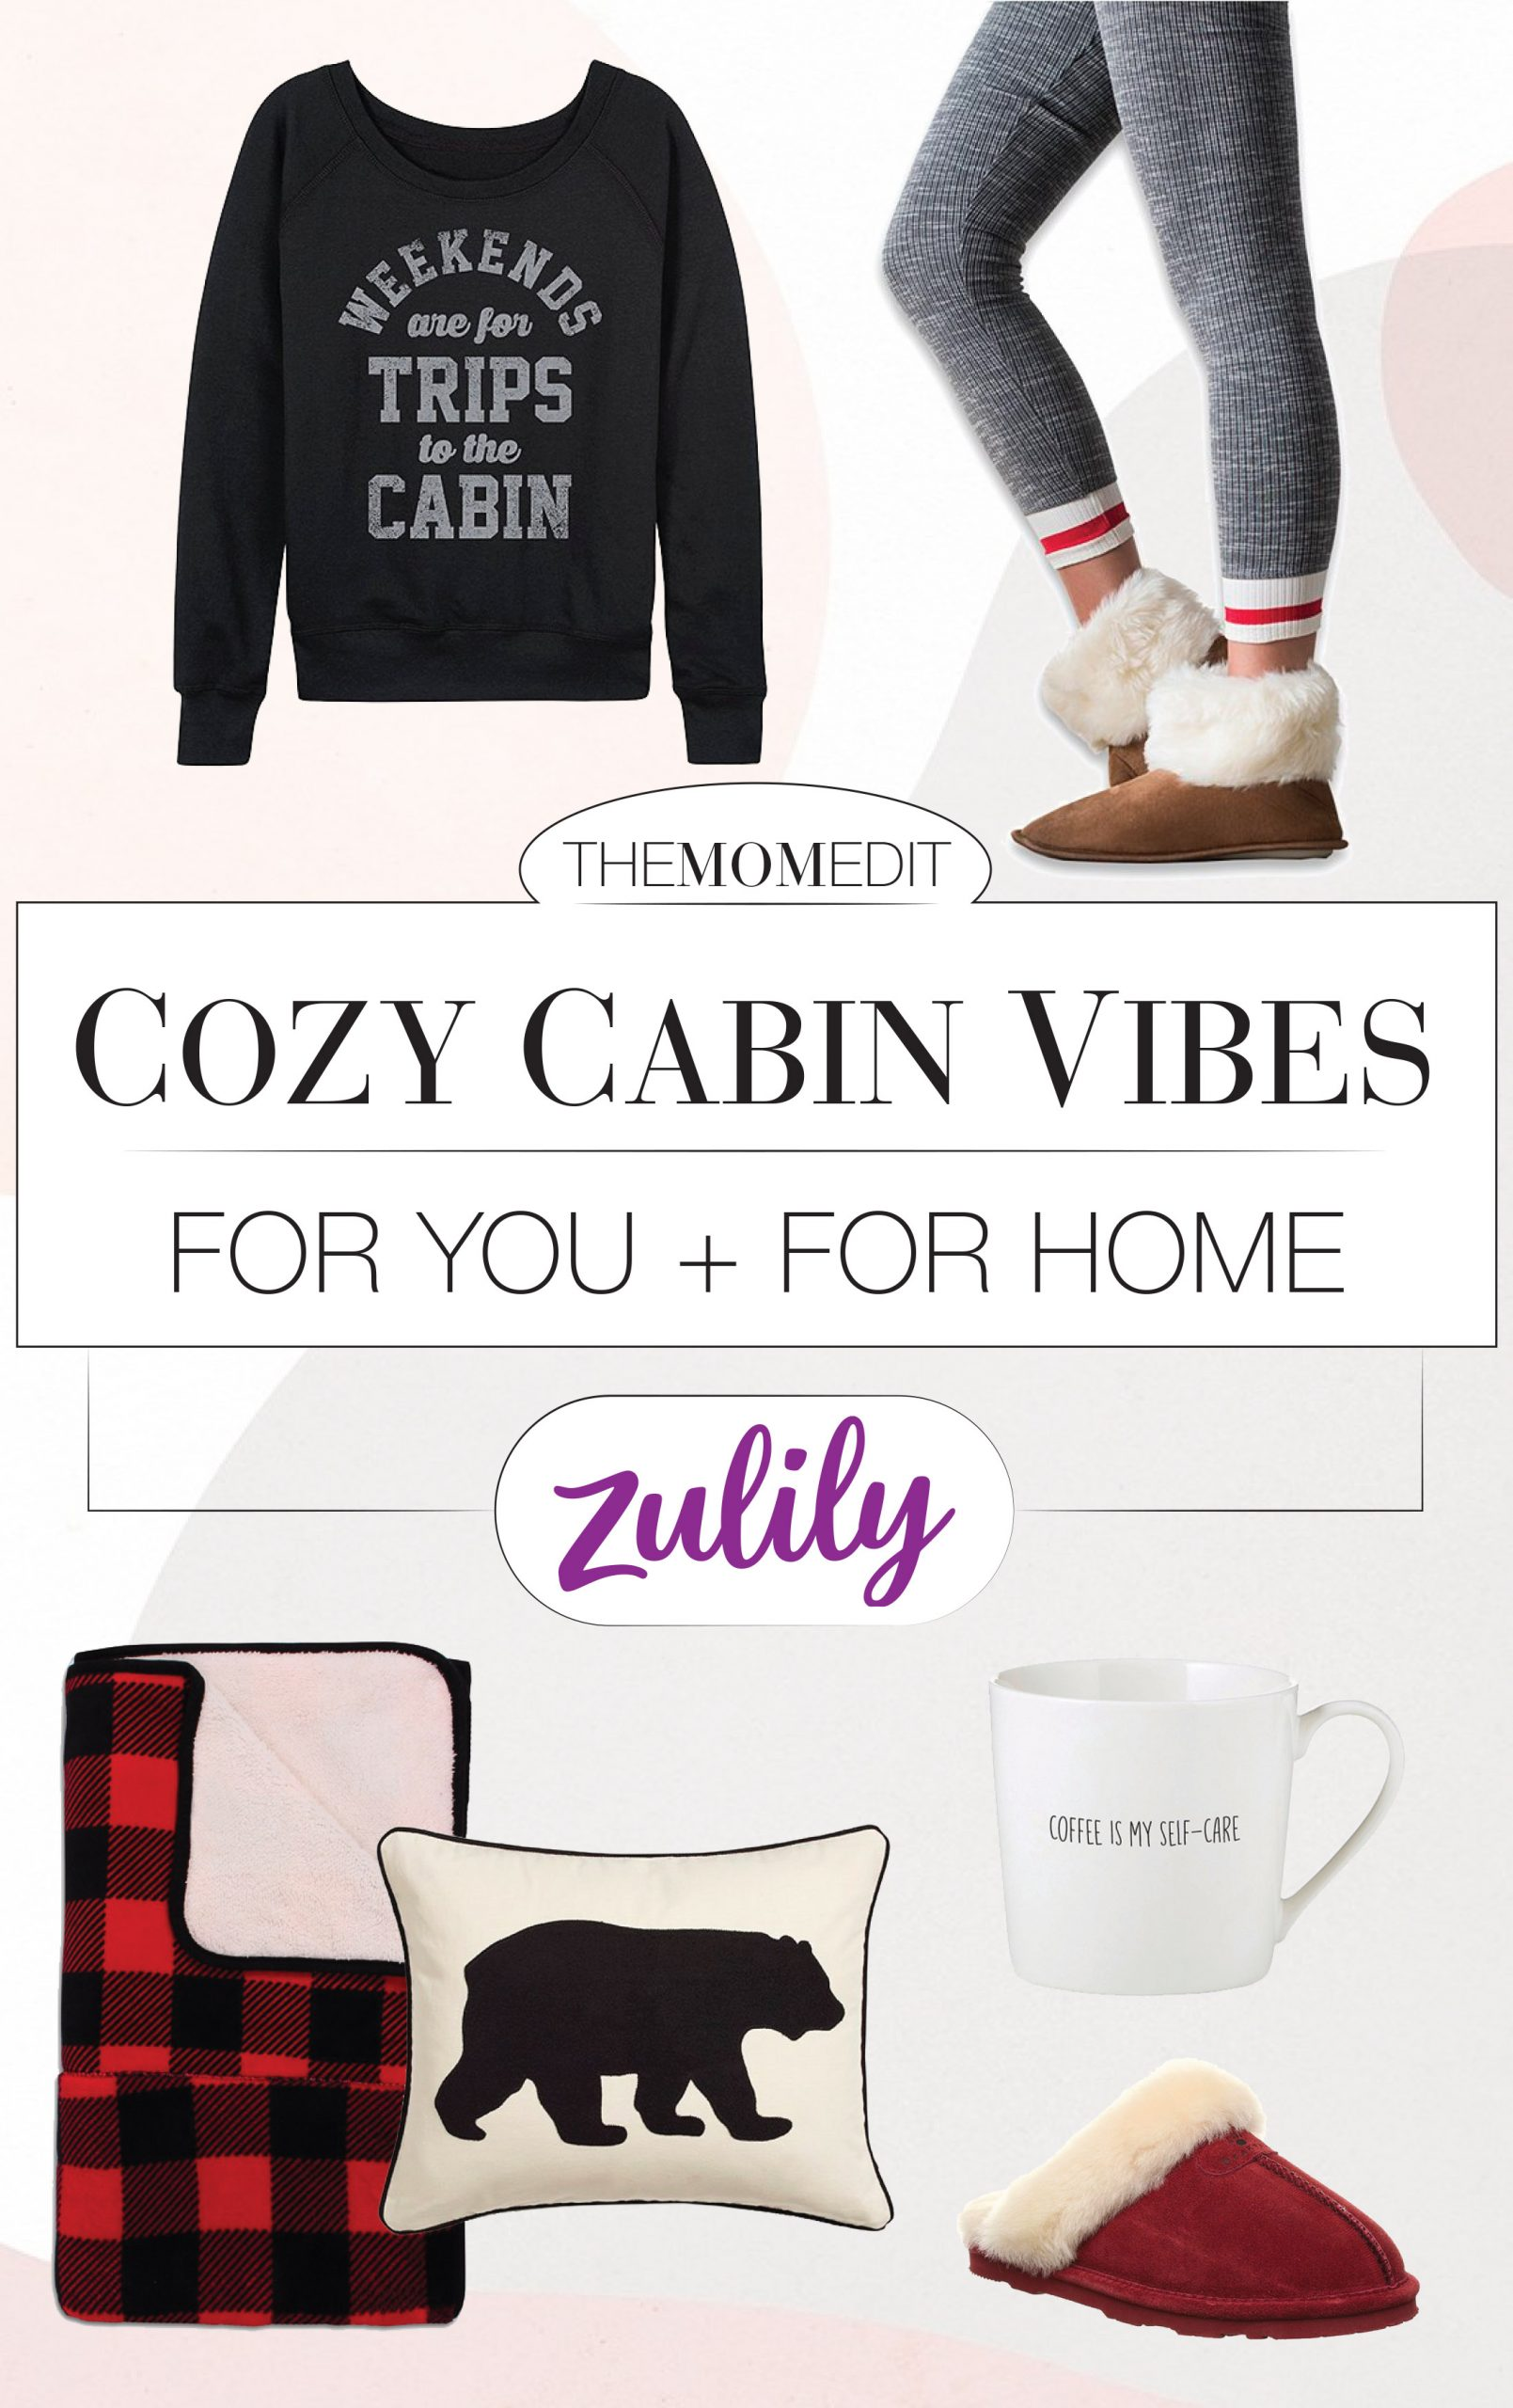 It's time to get cozy, so we're eyeing Zulily's Fall Holiday Shop for comfy clothes & home decor w/ cabin vibes. Think loungewear & plaid throws...